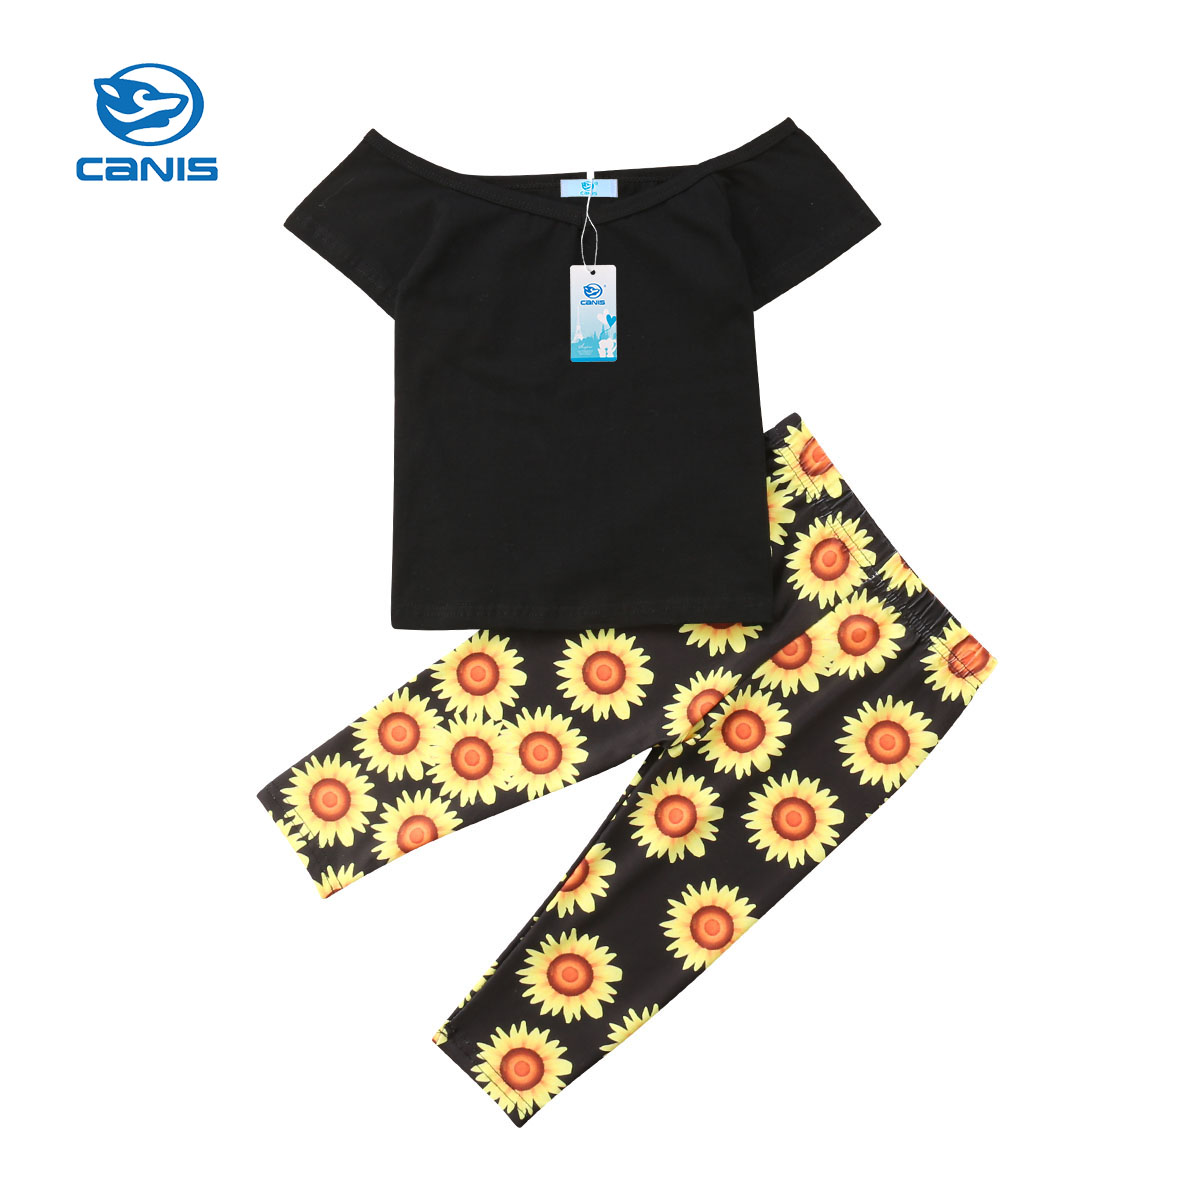 купить CANIS Toddler Kids Baby Girls Hot sale 2 Piece Floral Bebe Clothes Backless T-shirt Tops Sunflower Long Pant Outfit Clothes по цене 299.53 рублей